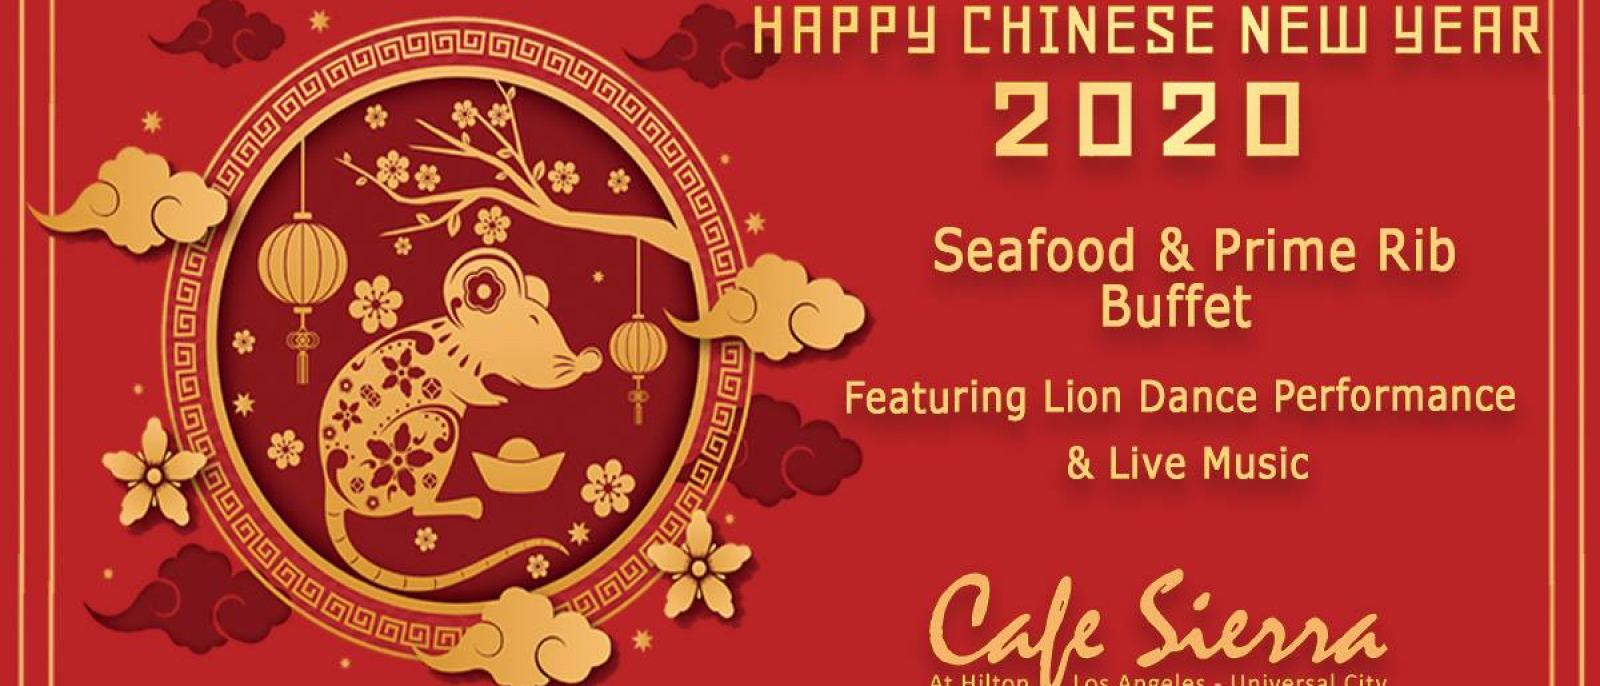 Chinese New Year Celebration at Cafe Sierra